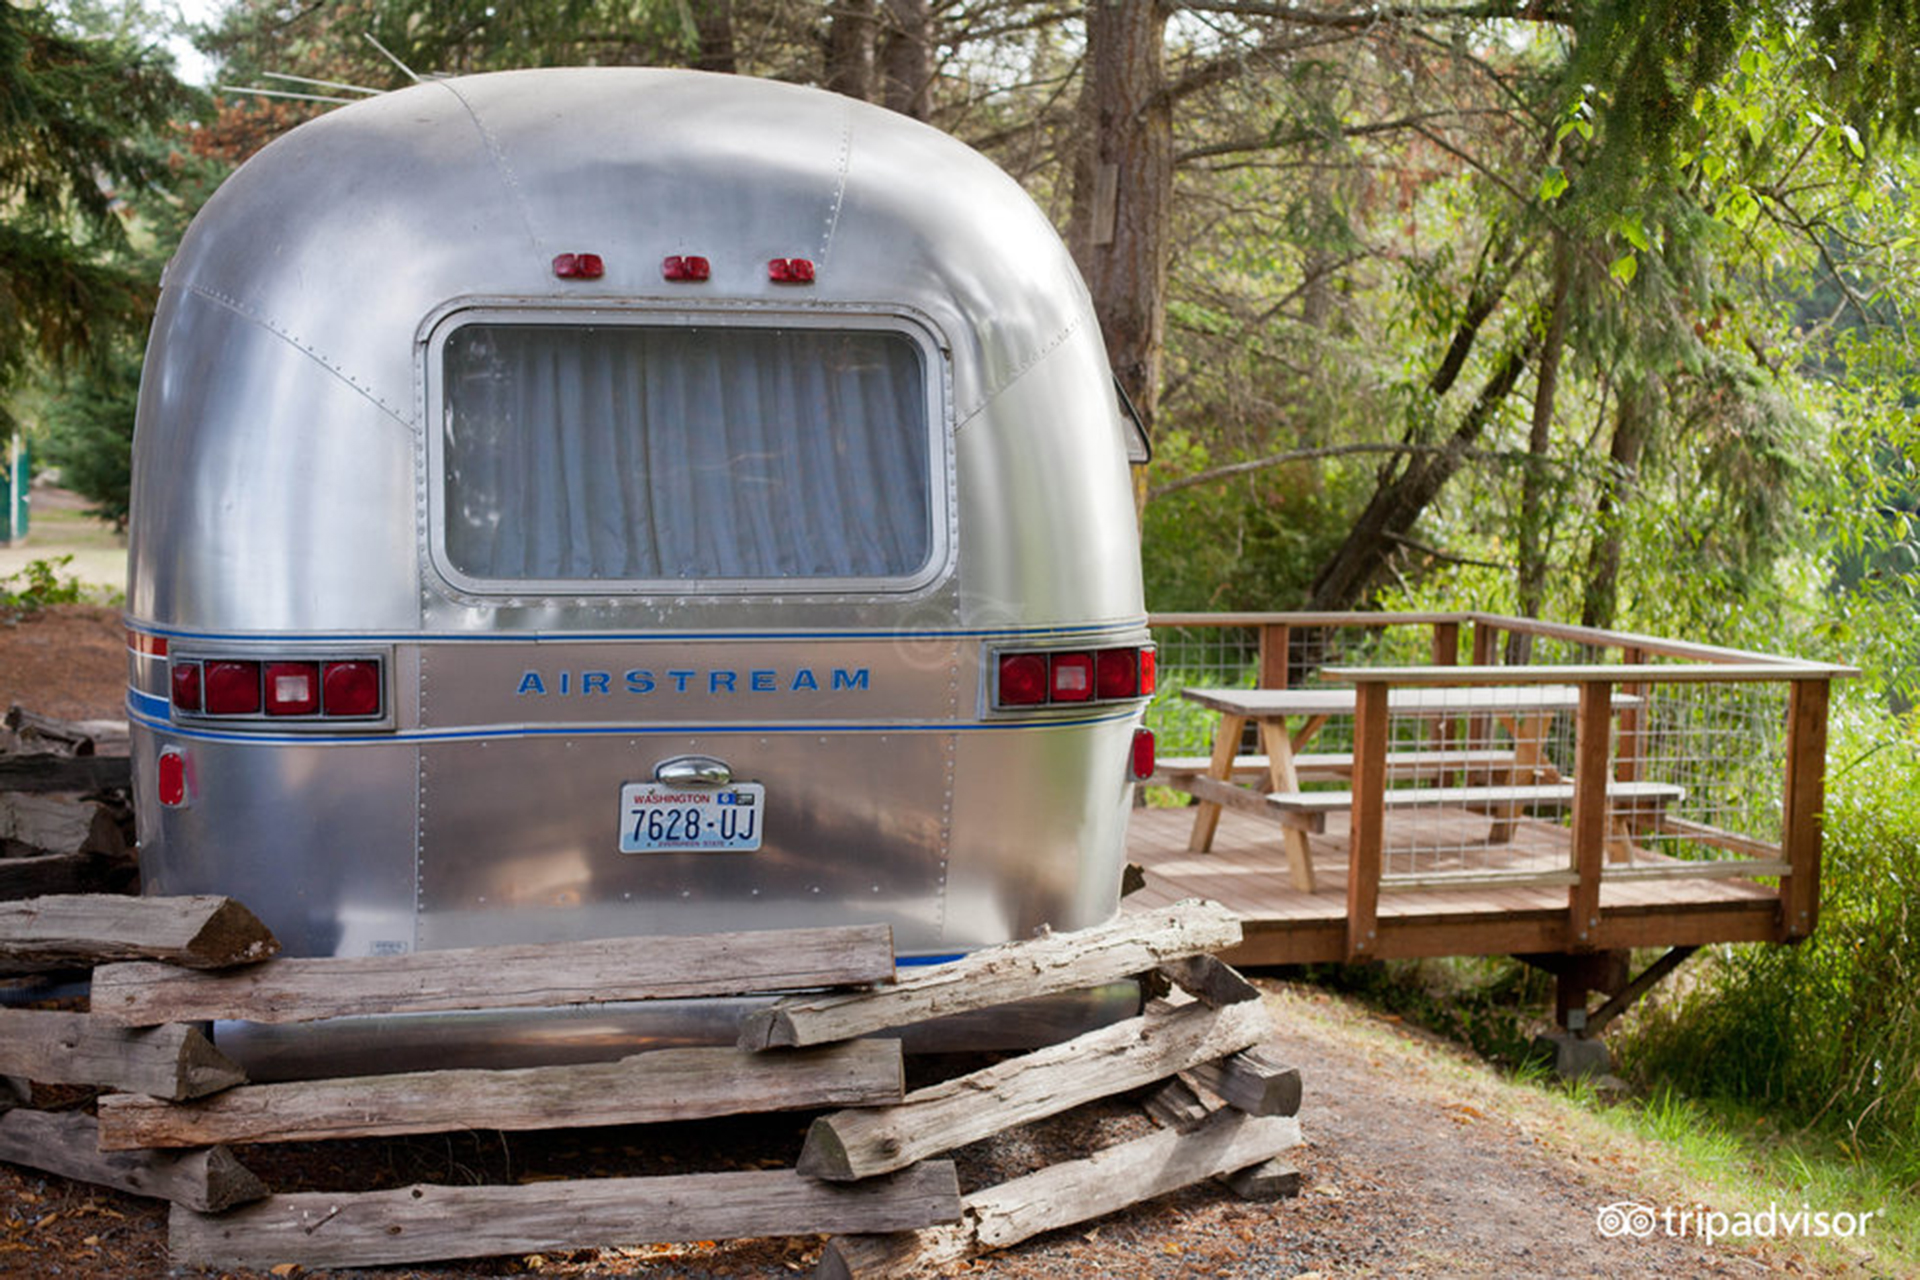 Airstream Trailer at Lakedale Resort at Three Lakes in the San Juan Island